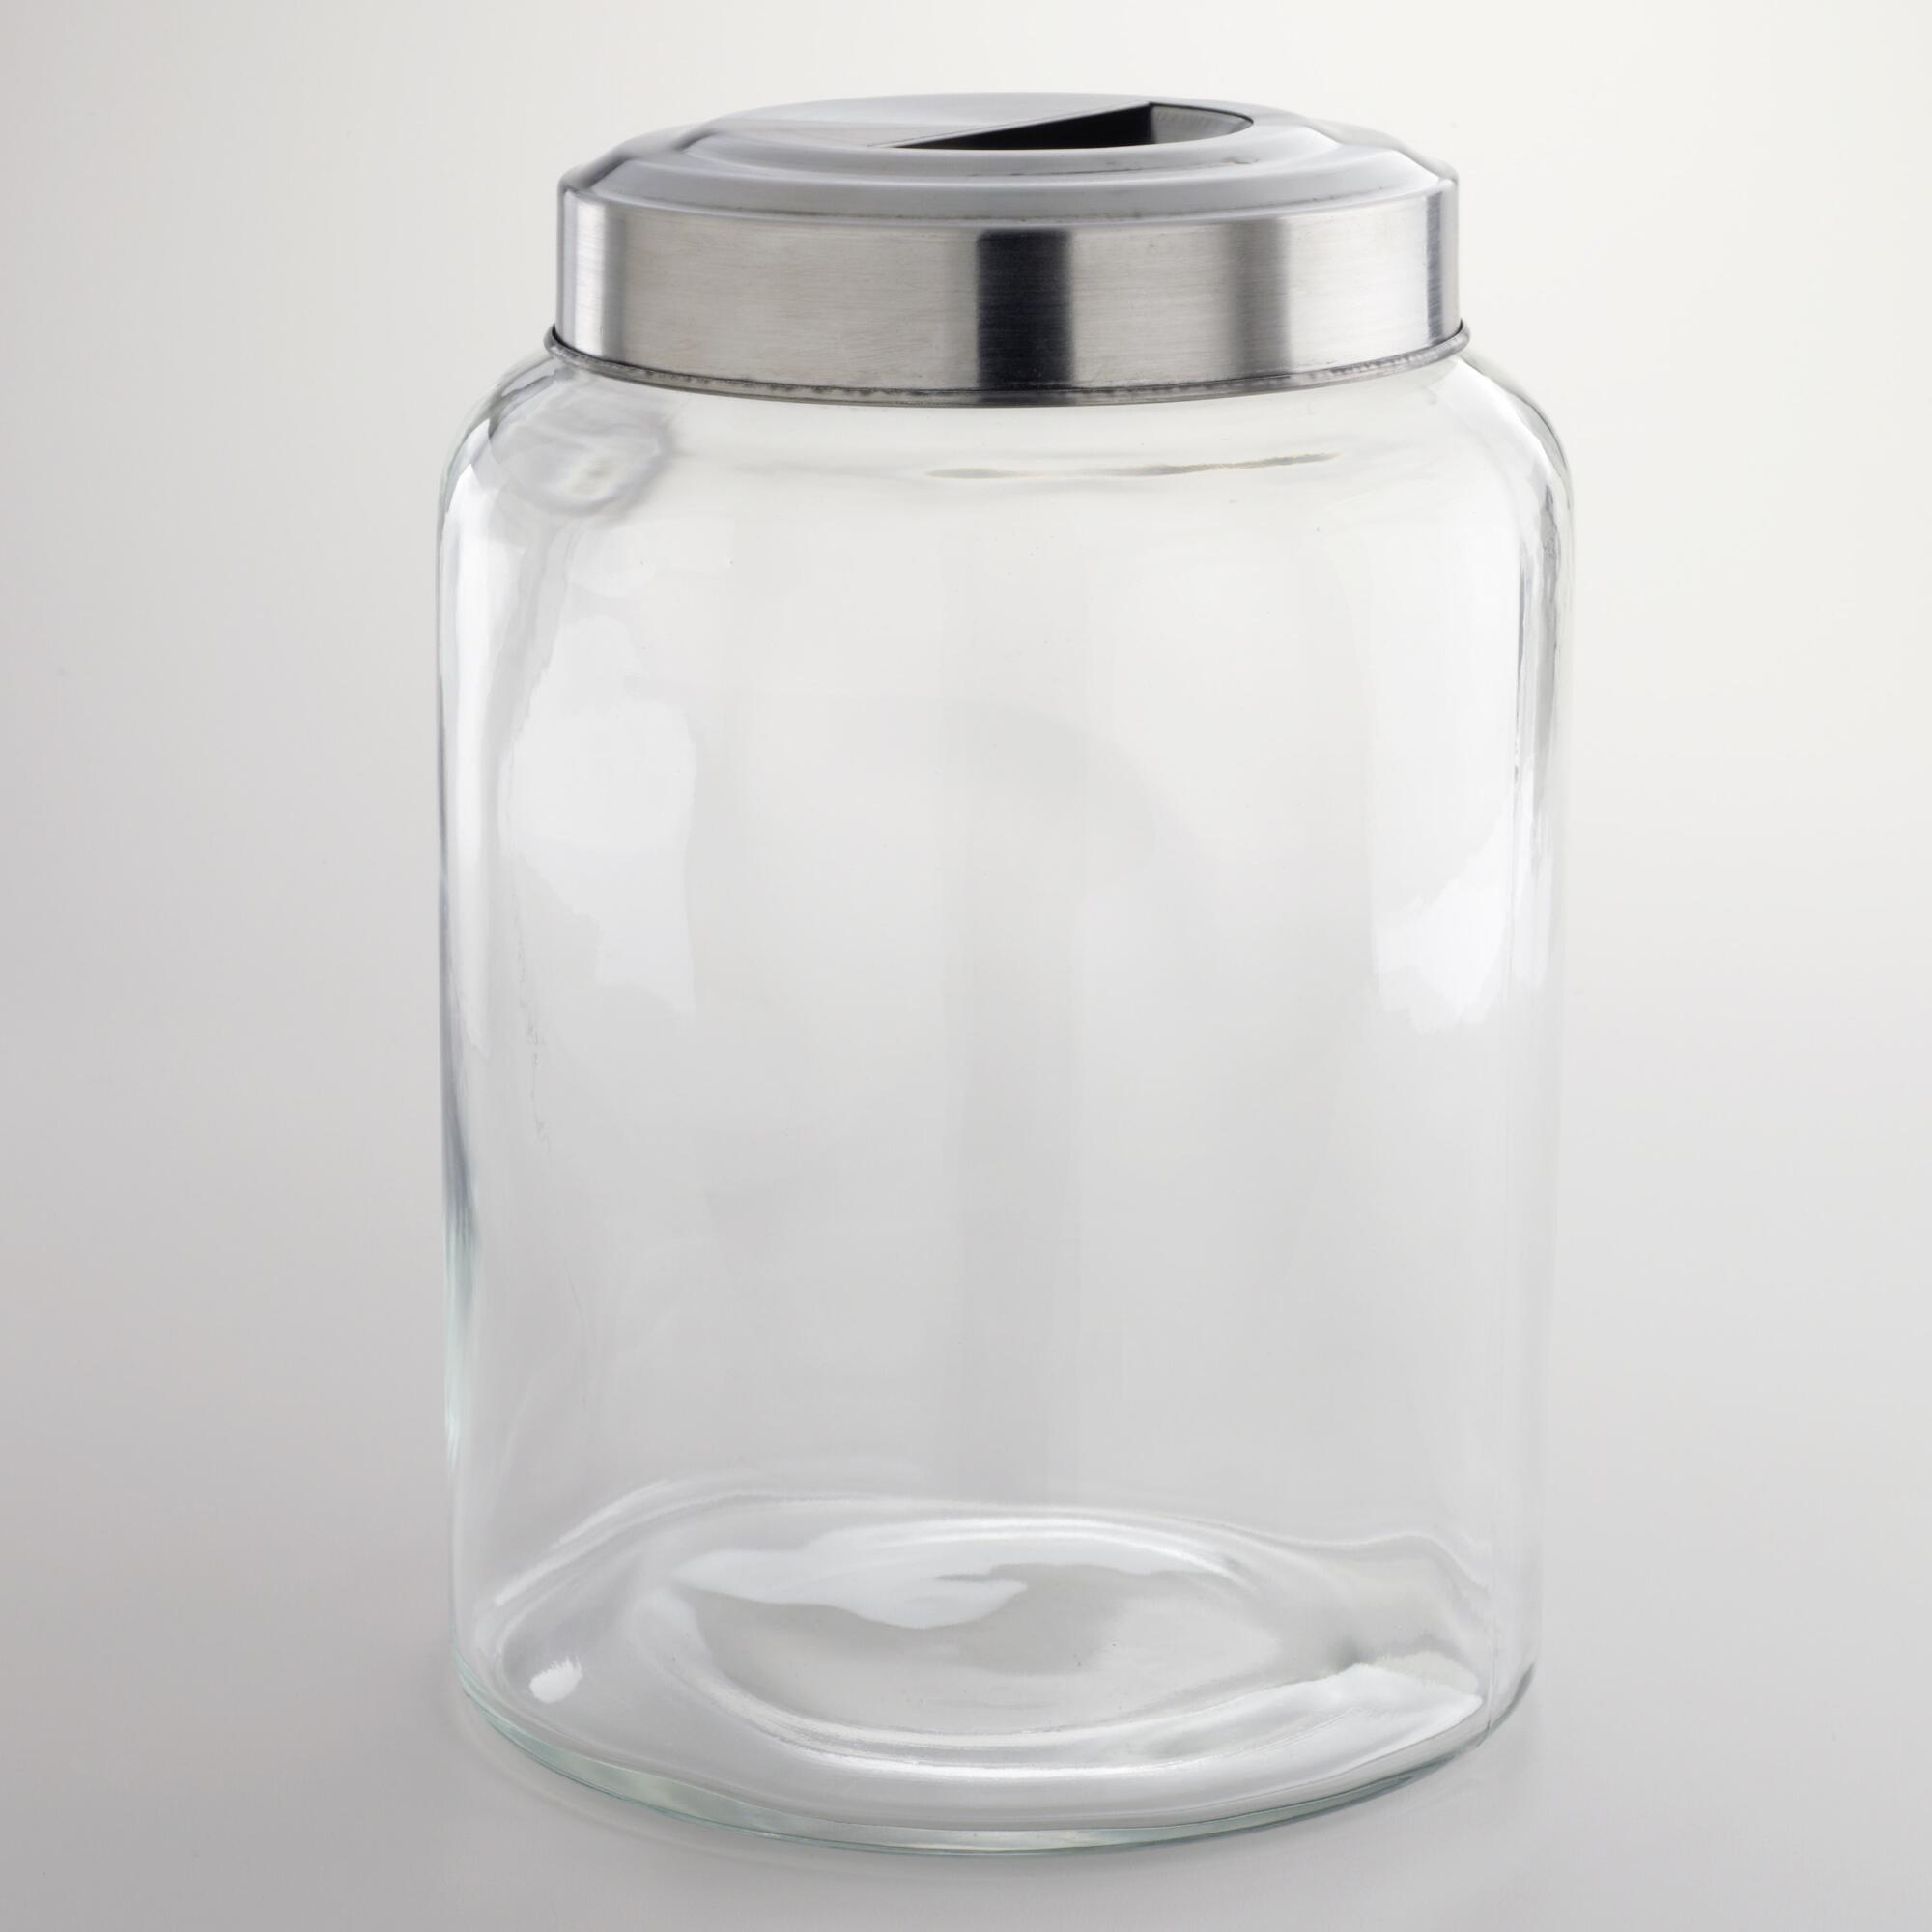 Huge Glass Cookie Jar Large Glass Kitchen Jar By World Market Farmhouse Home